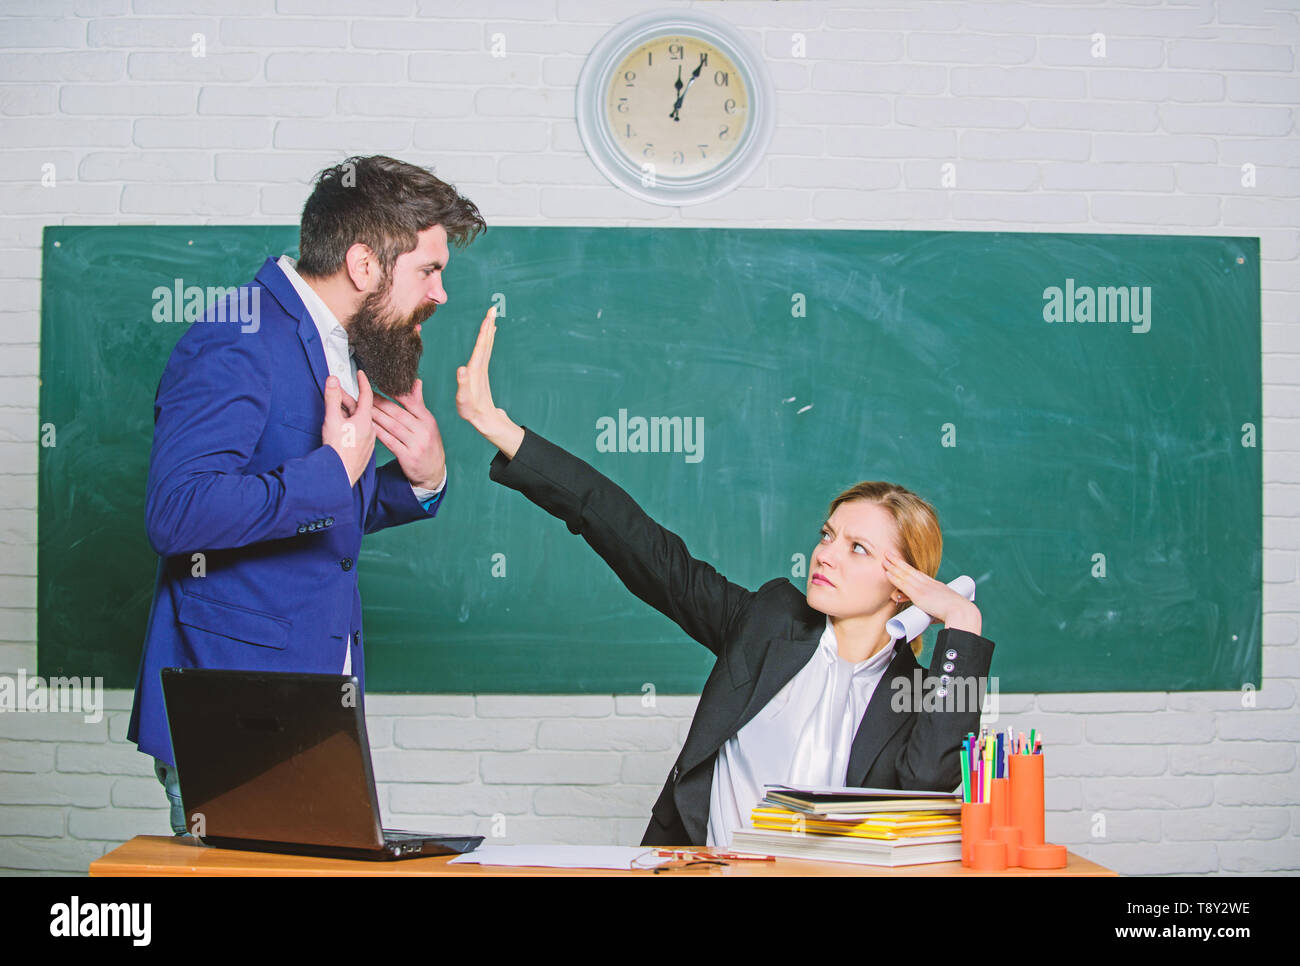 Stop talking to me. Criticism and objection concept. Teacher wants man to shut up. Please shut up. Tired of complaints. Indifferent about objection. Dismissed objection. School teacher and parent. - Stock Image